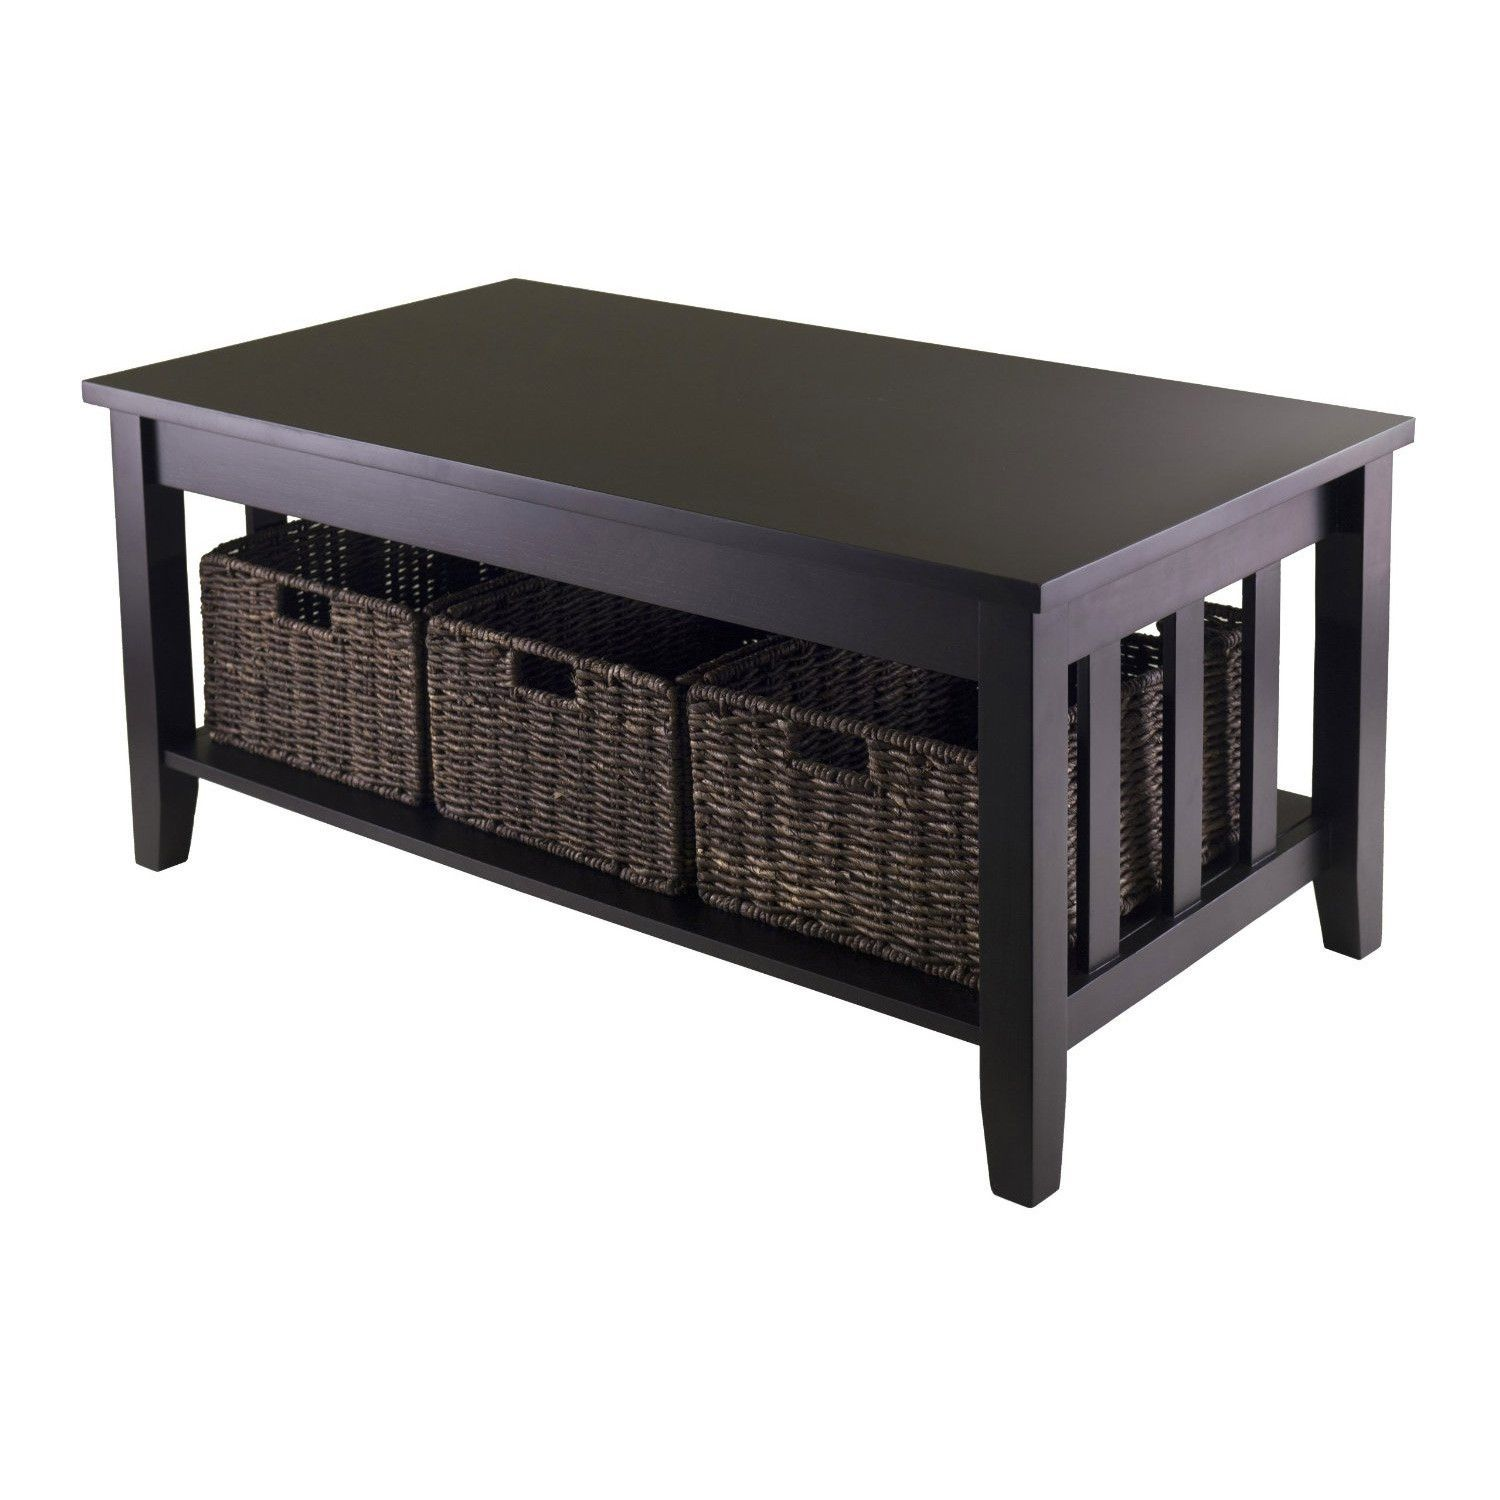 Mission Style Dark Wood Coffee Table with 3 Folding Storage